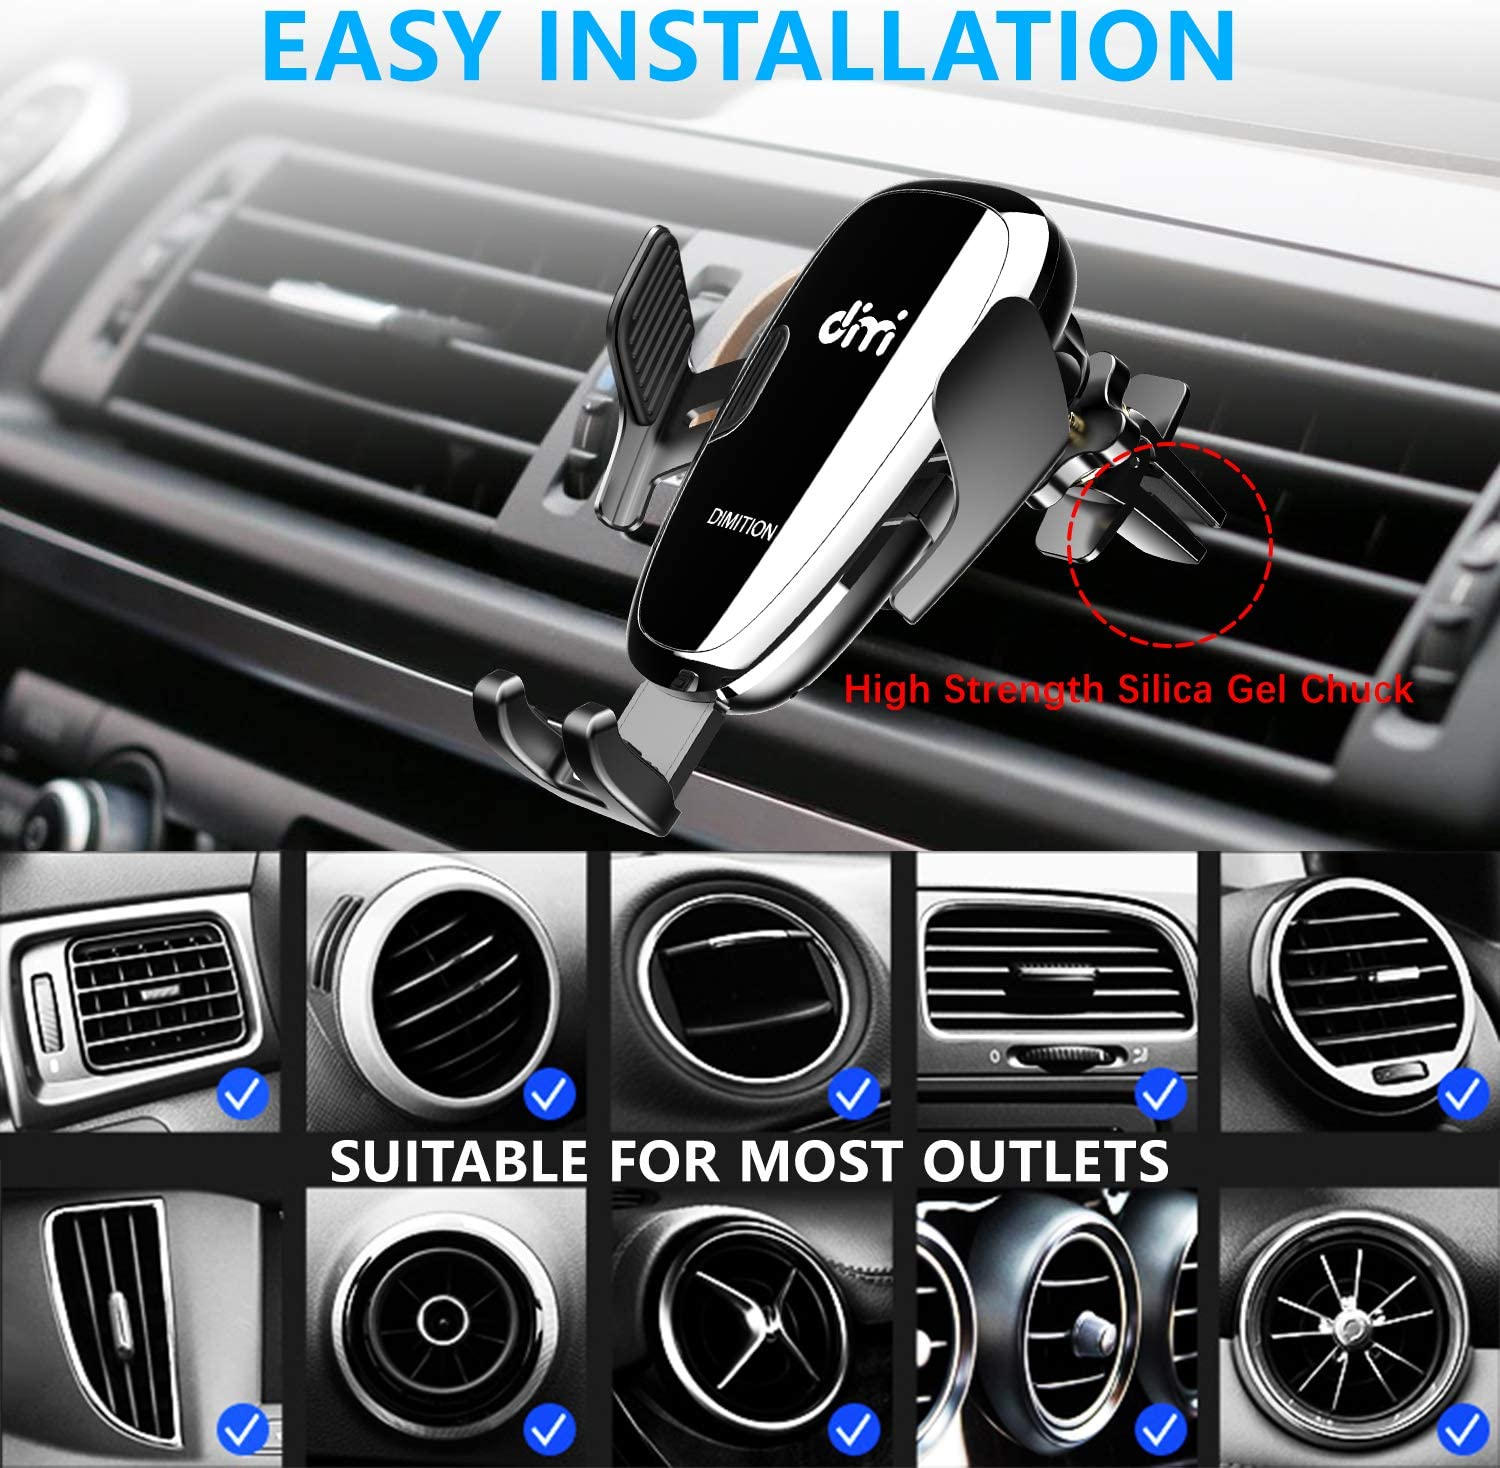 Samsung Galaxy S10//S10 Plus//S9//S8//S7//Note 9 10 DM Car Phone Mount Air Vent Automatic Clamping Cell Phone Holder for Car Wireless Charger Built-in Battery Compatible with iPhone Xs Max//XR//XS//X//8 Plus